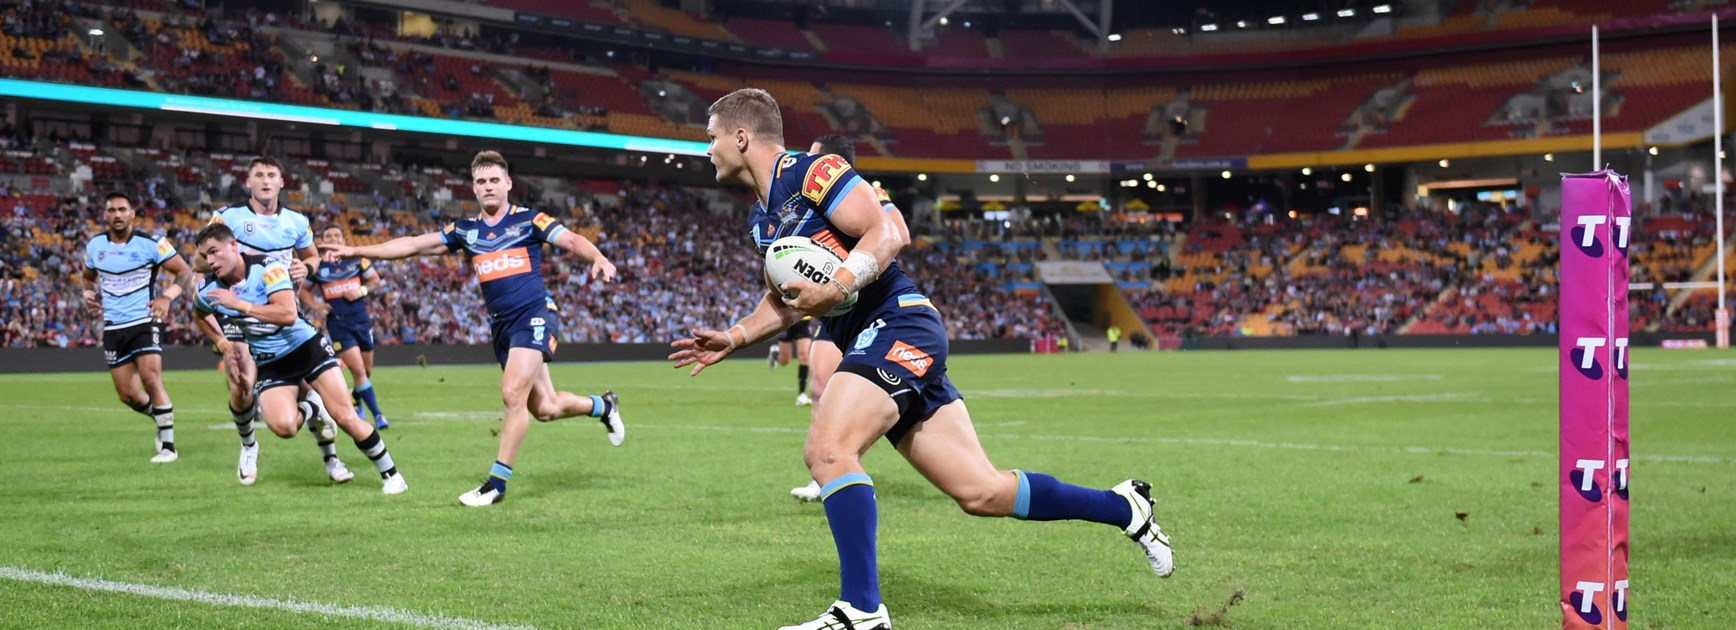 Less panic, more poise required for desperate Titans